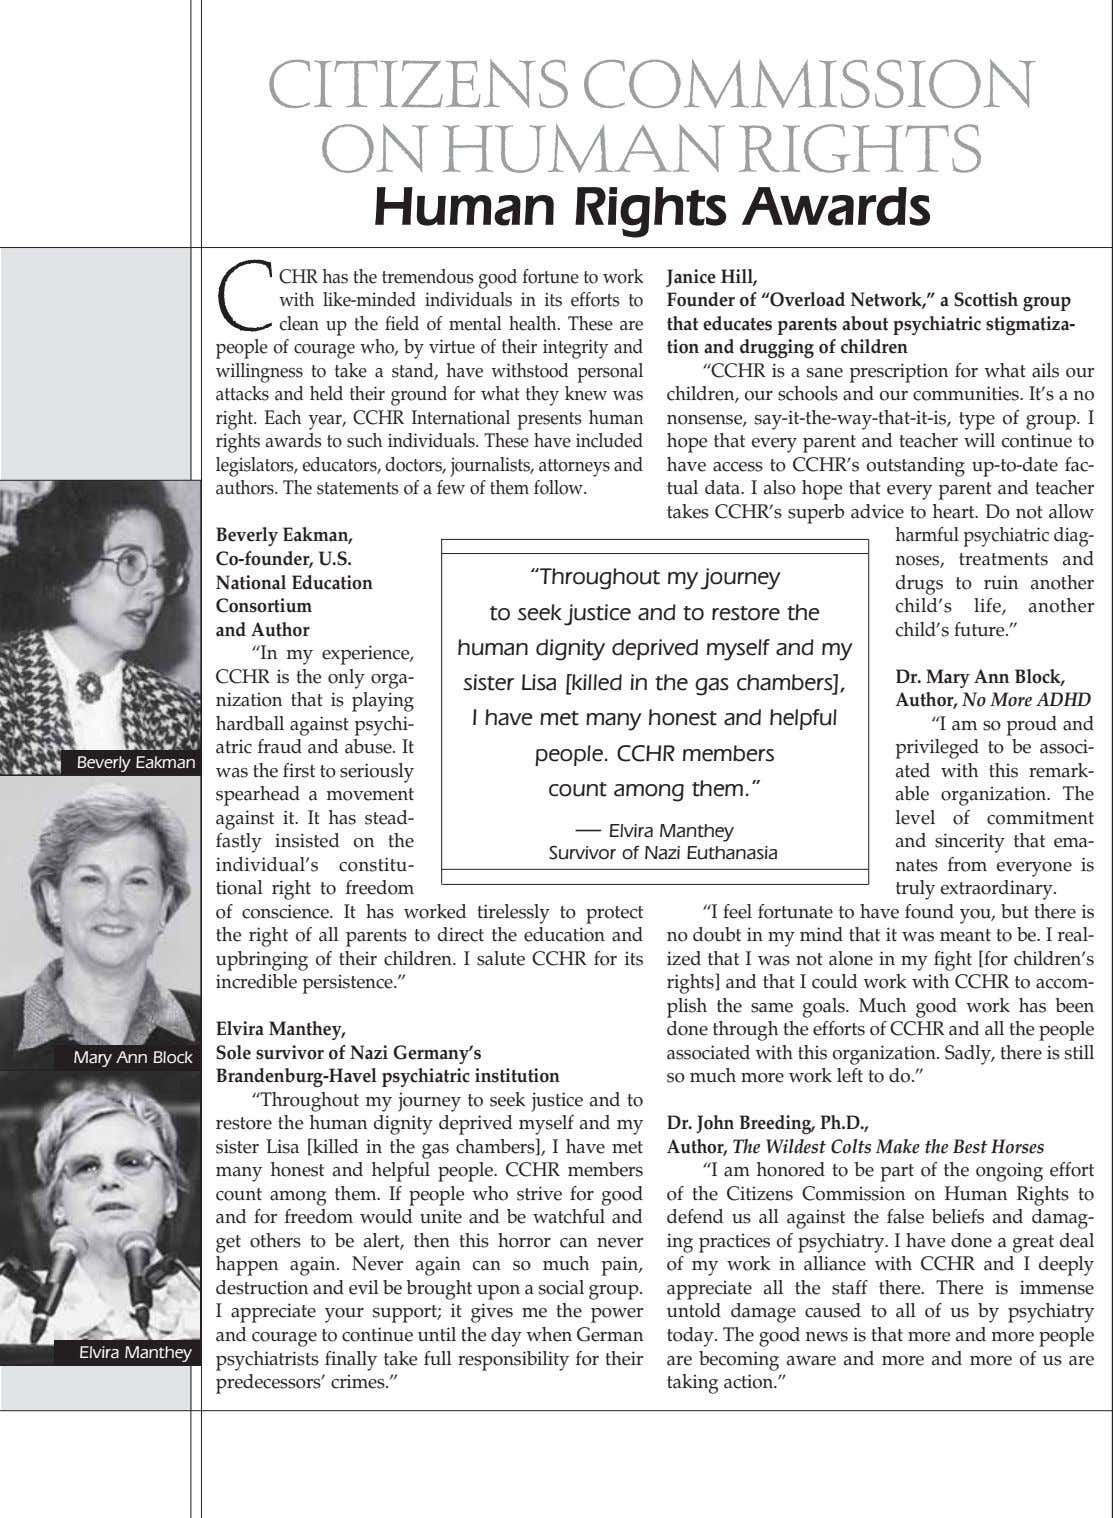 CITIZENS COMMISSION ON HUMAN RIGHTS Human Rights Awards C CHR has the tremendous good fortune to